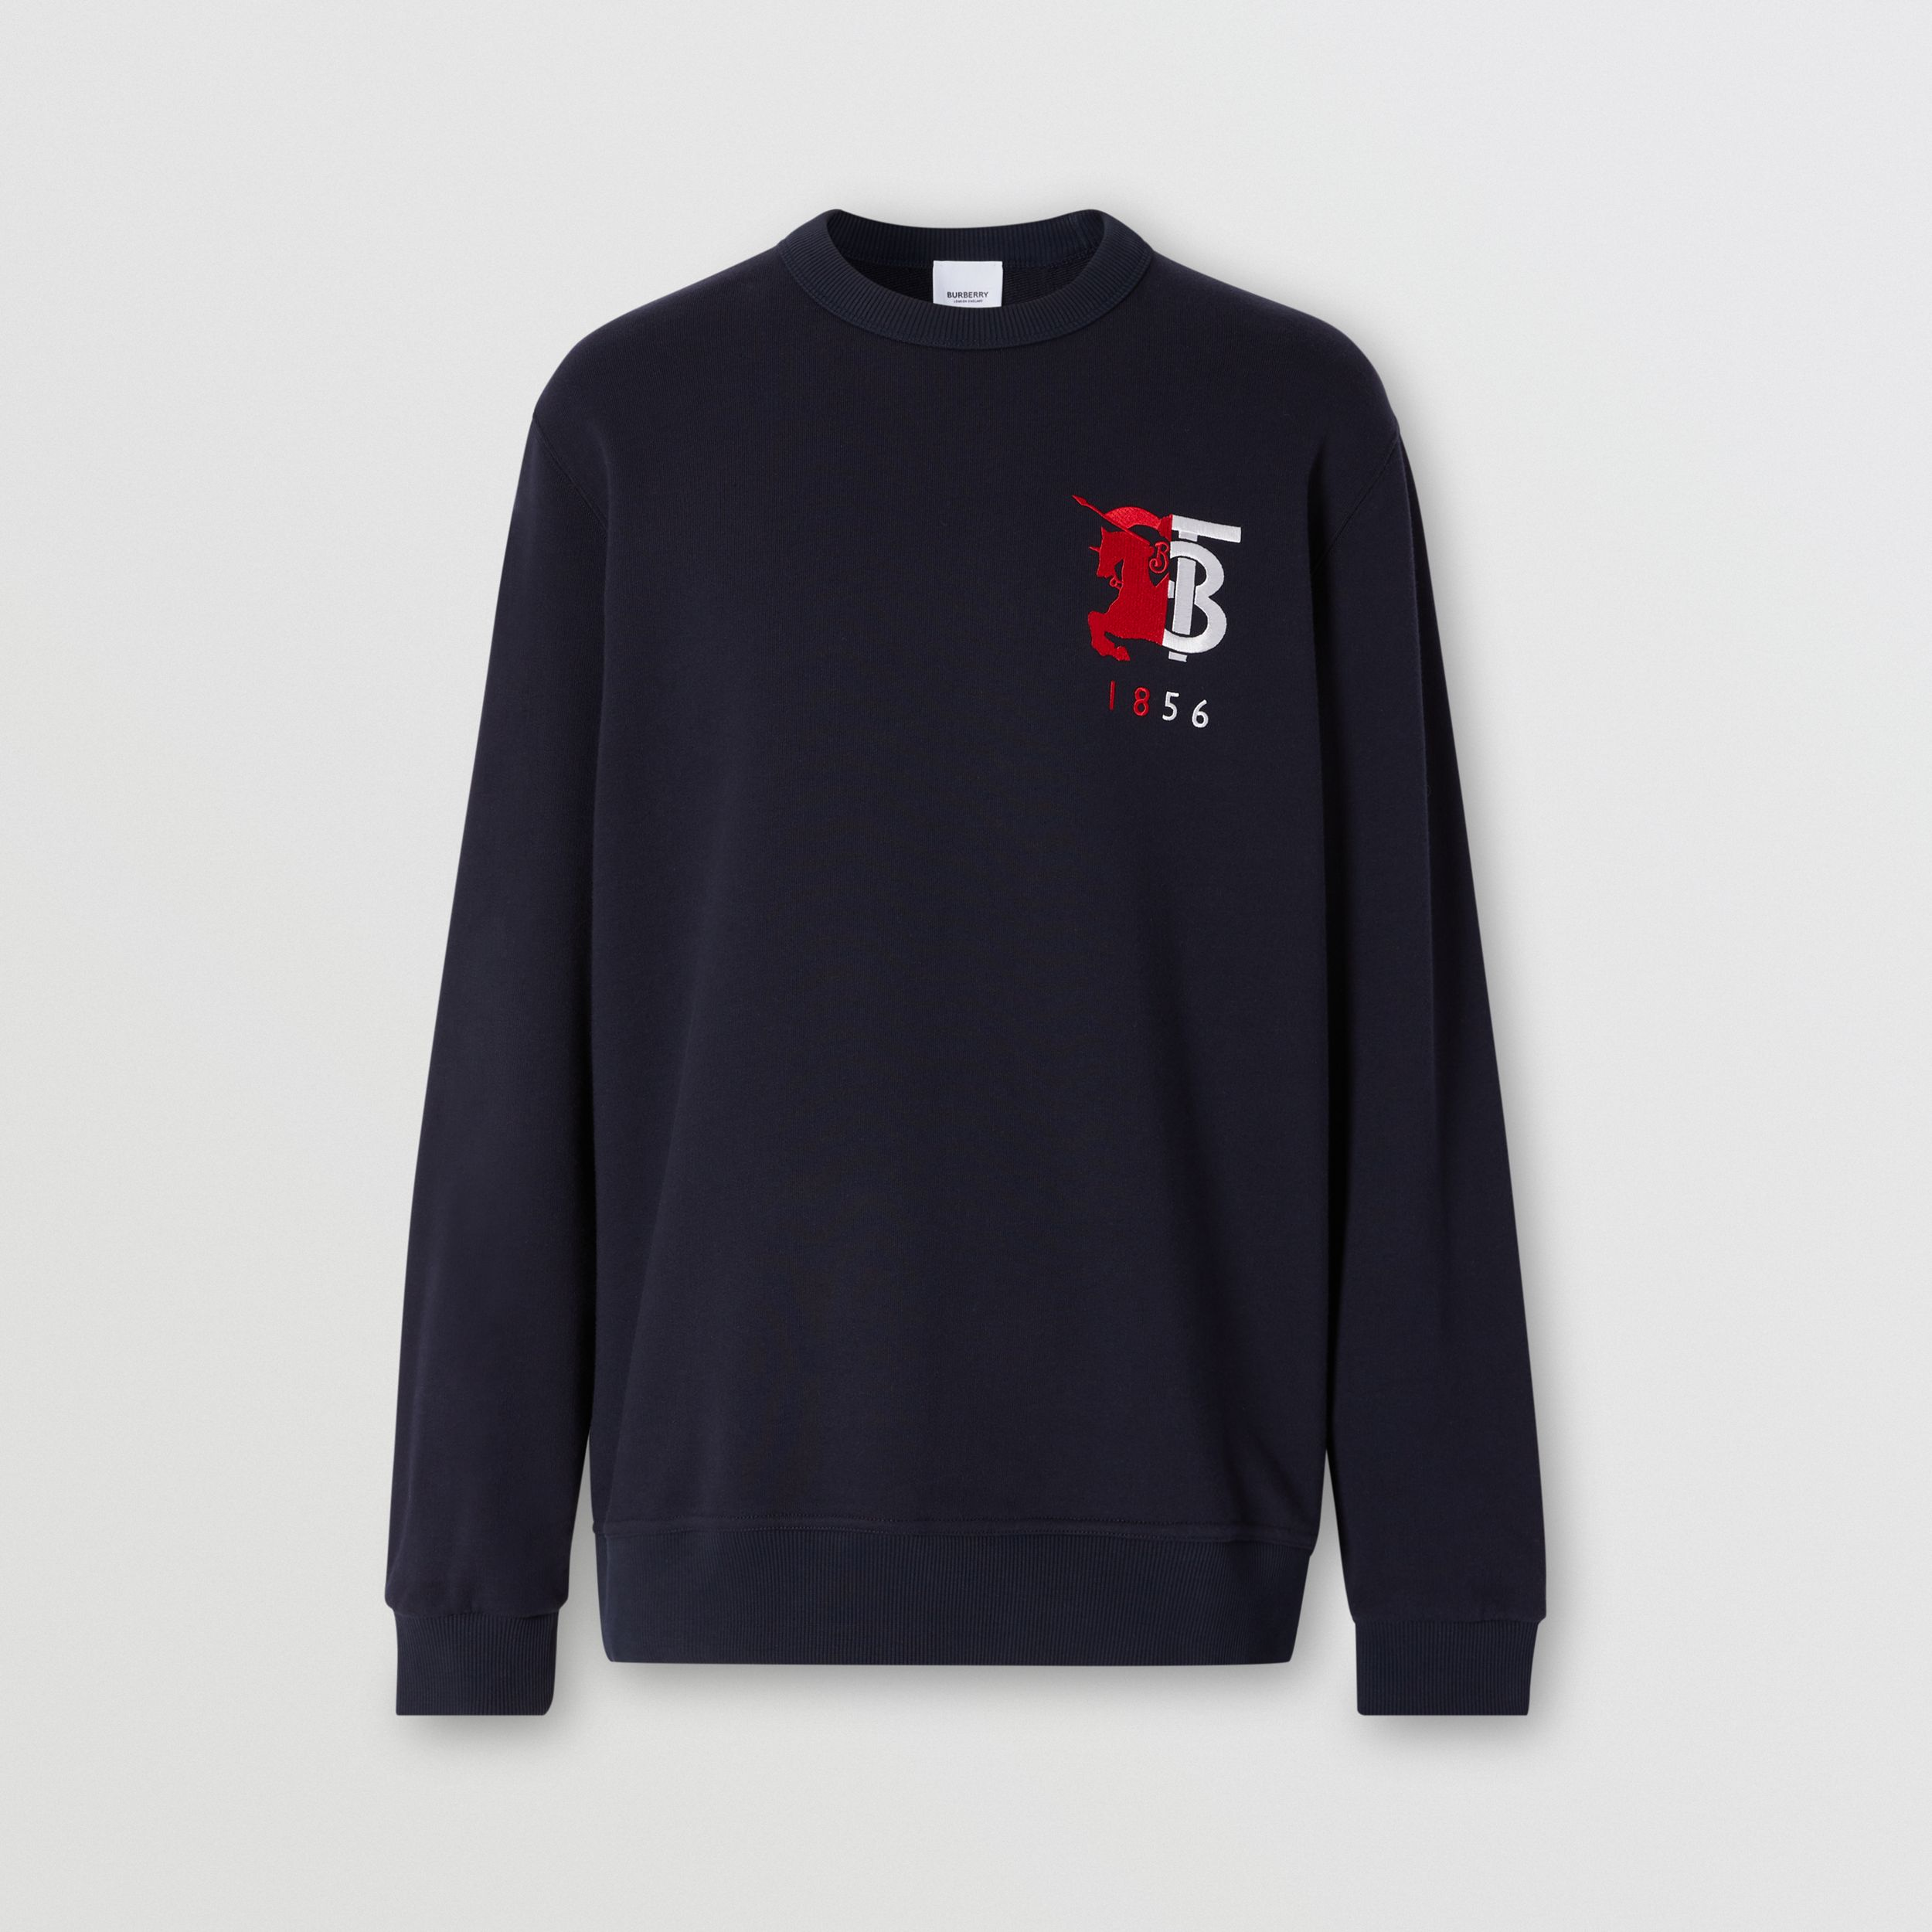 Contrast Logo Graphic Cotton Sweatshirt in Navy - Men | Burberry - 4